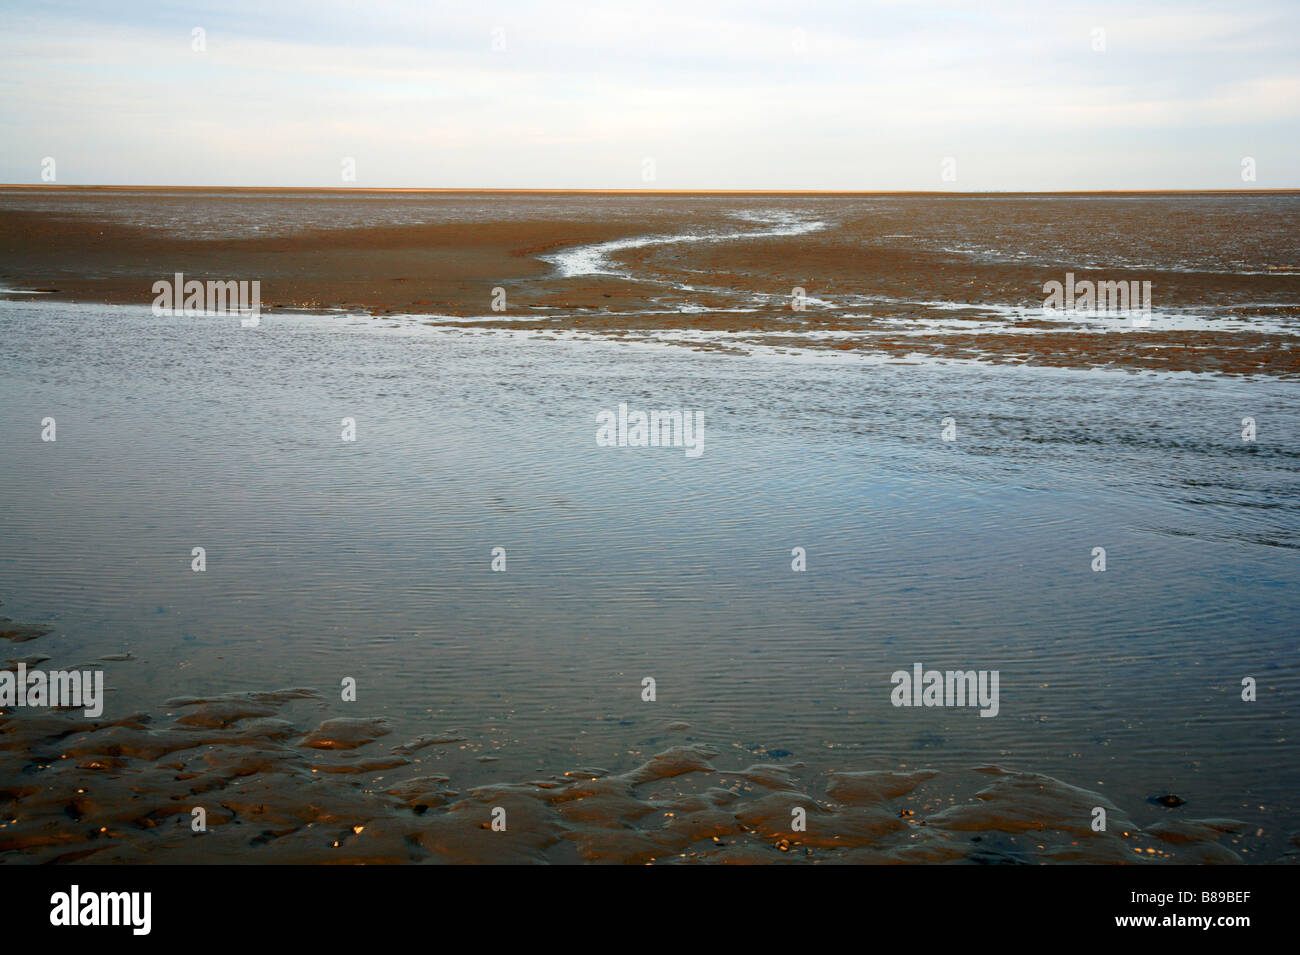 Creek at Stiffkey, Norfolk, UK, with small stream running over West Sand to the sea. - Stock Image